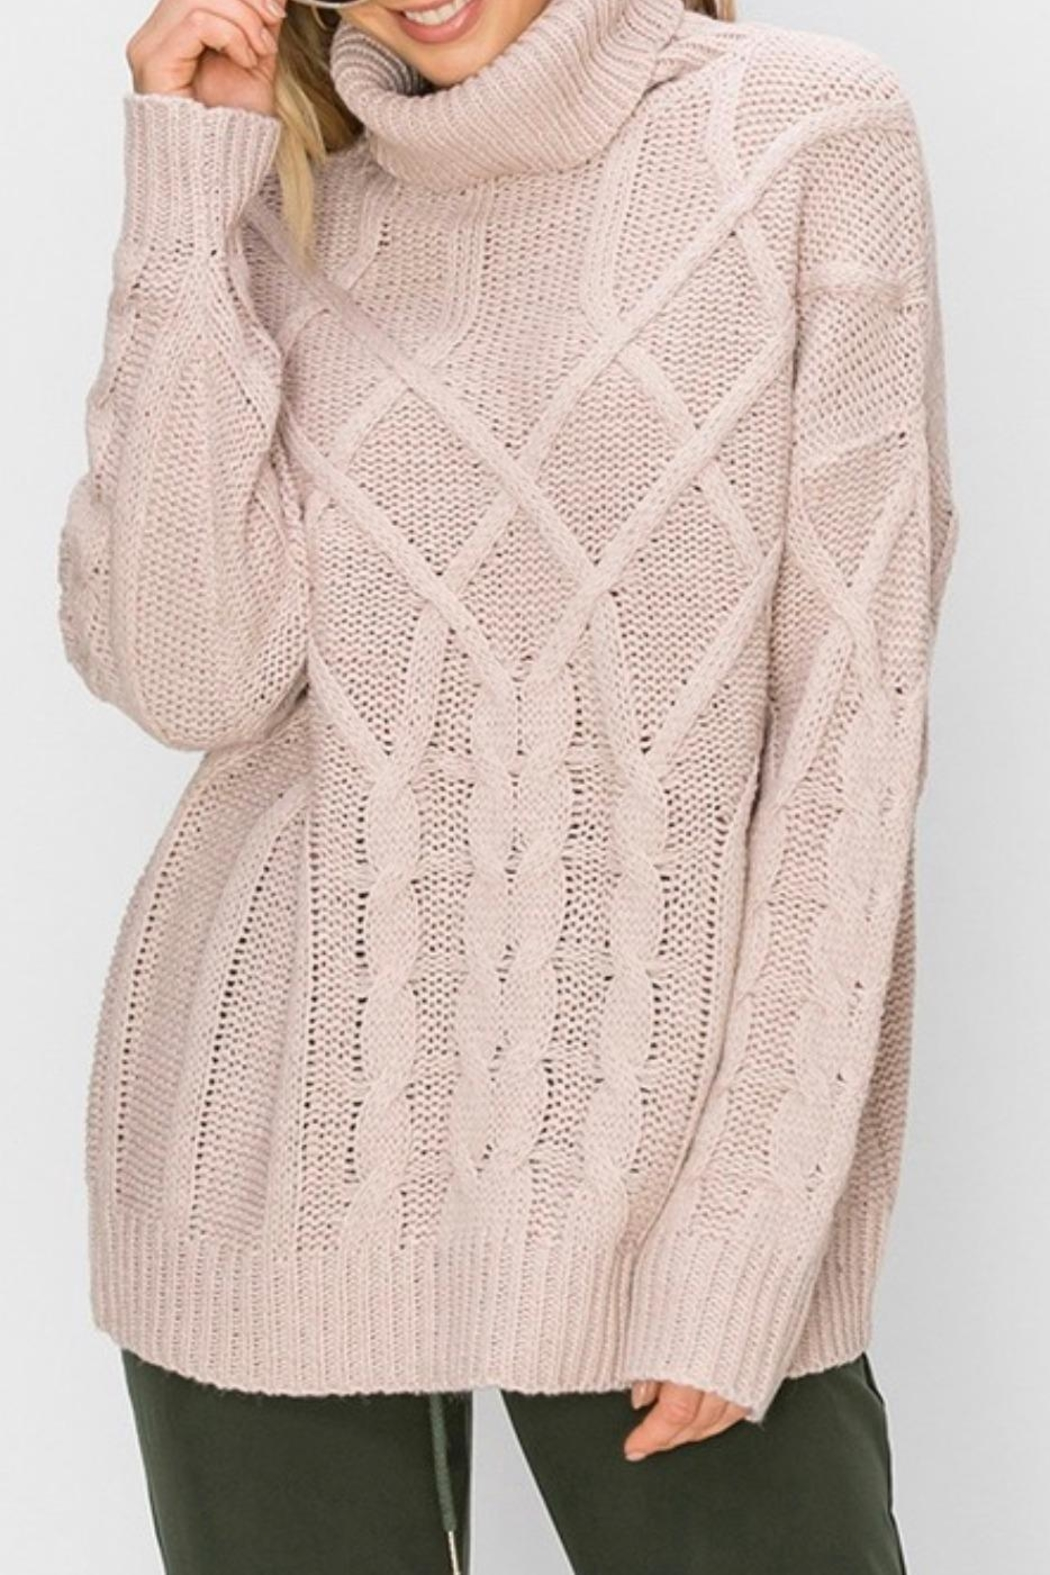 HYFVE Oversized Cable-Knit Sweater - Main Image